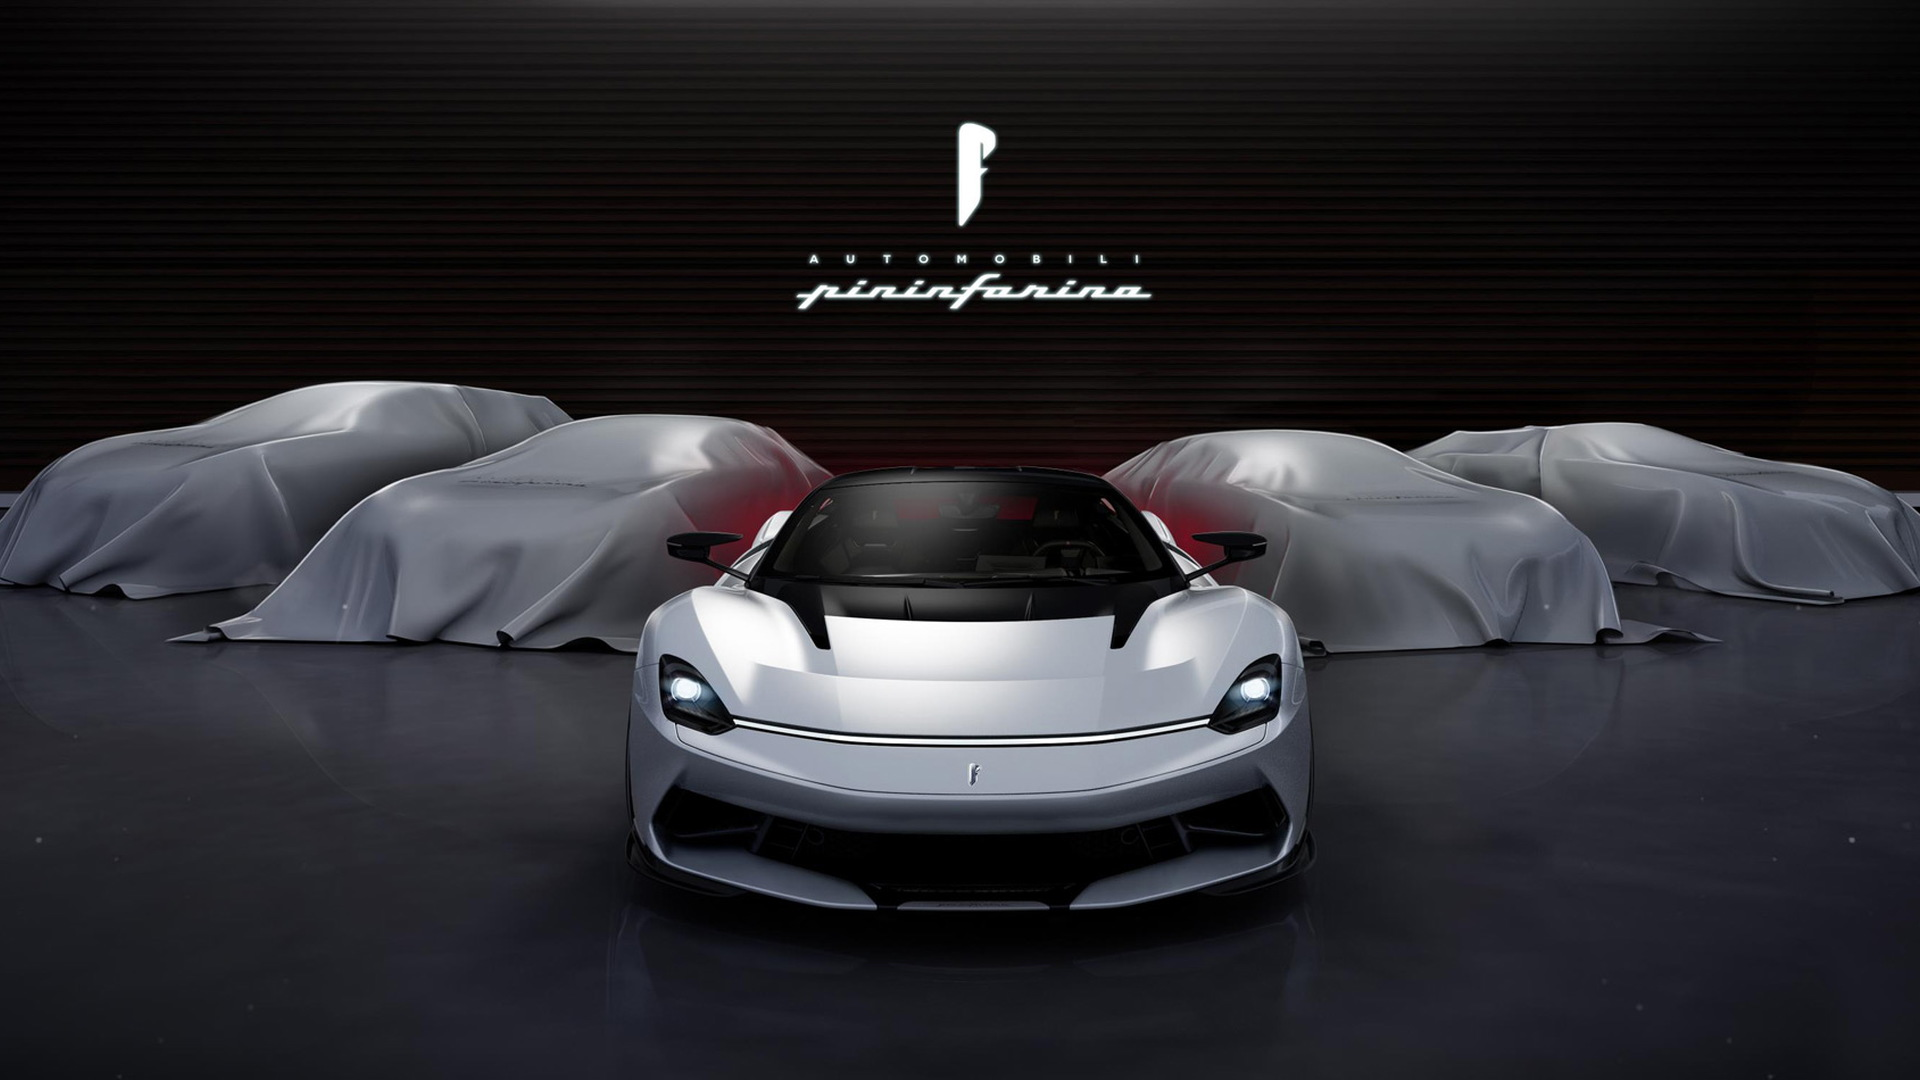 Teaser for Pininfarina's future lineup